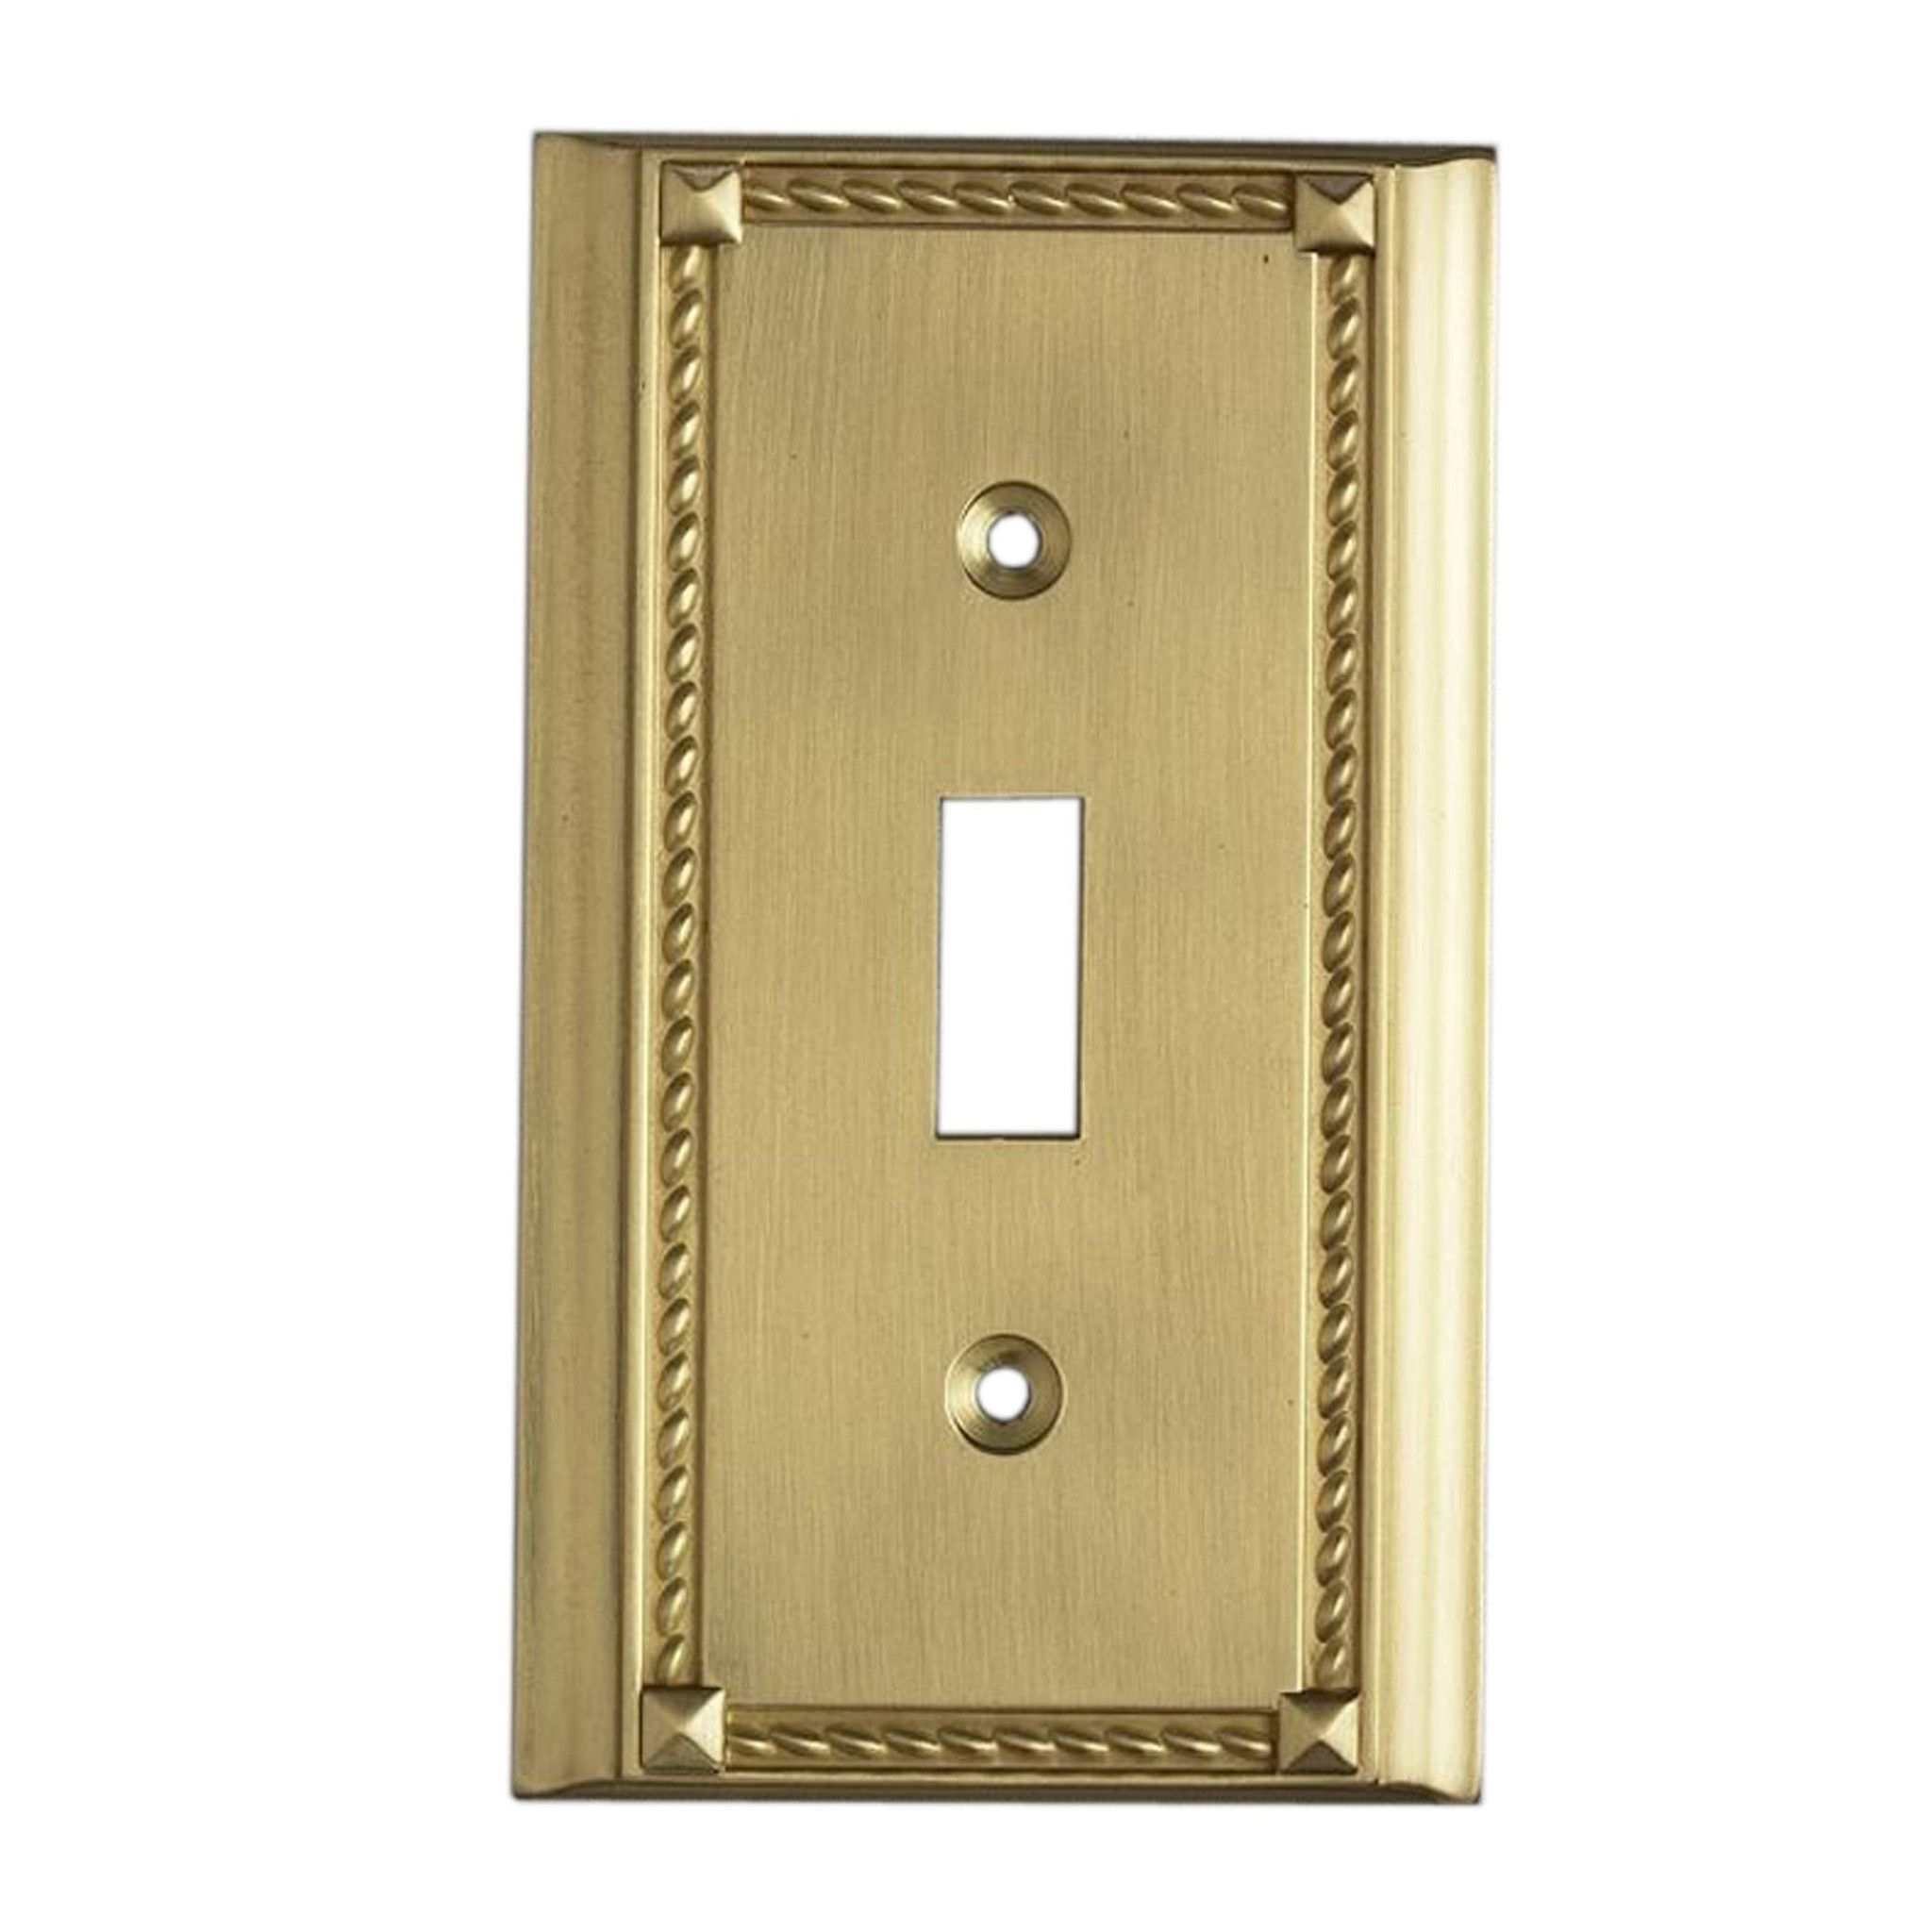 Clickplates Single Switch Plate In Brass | Products